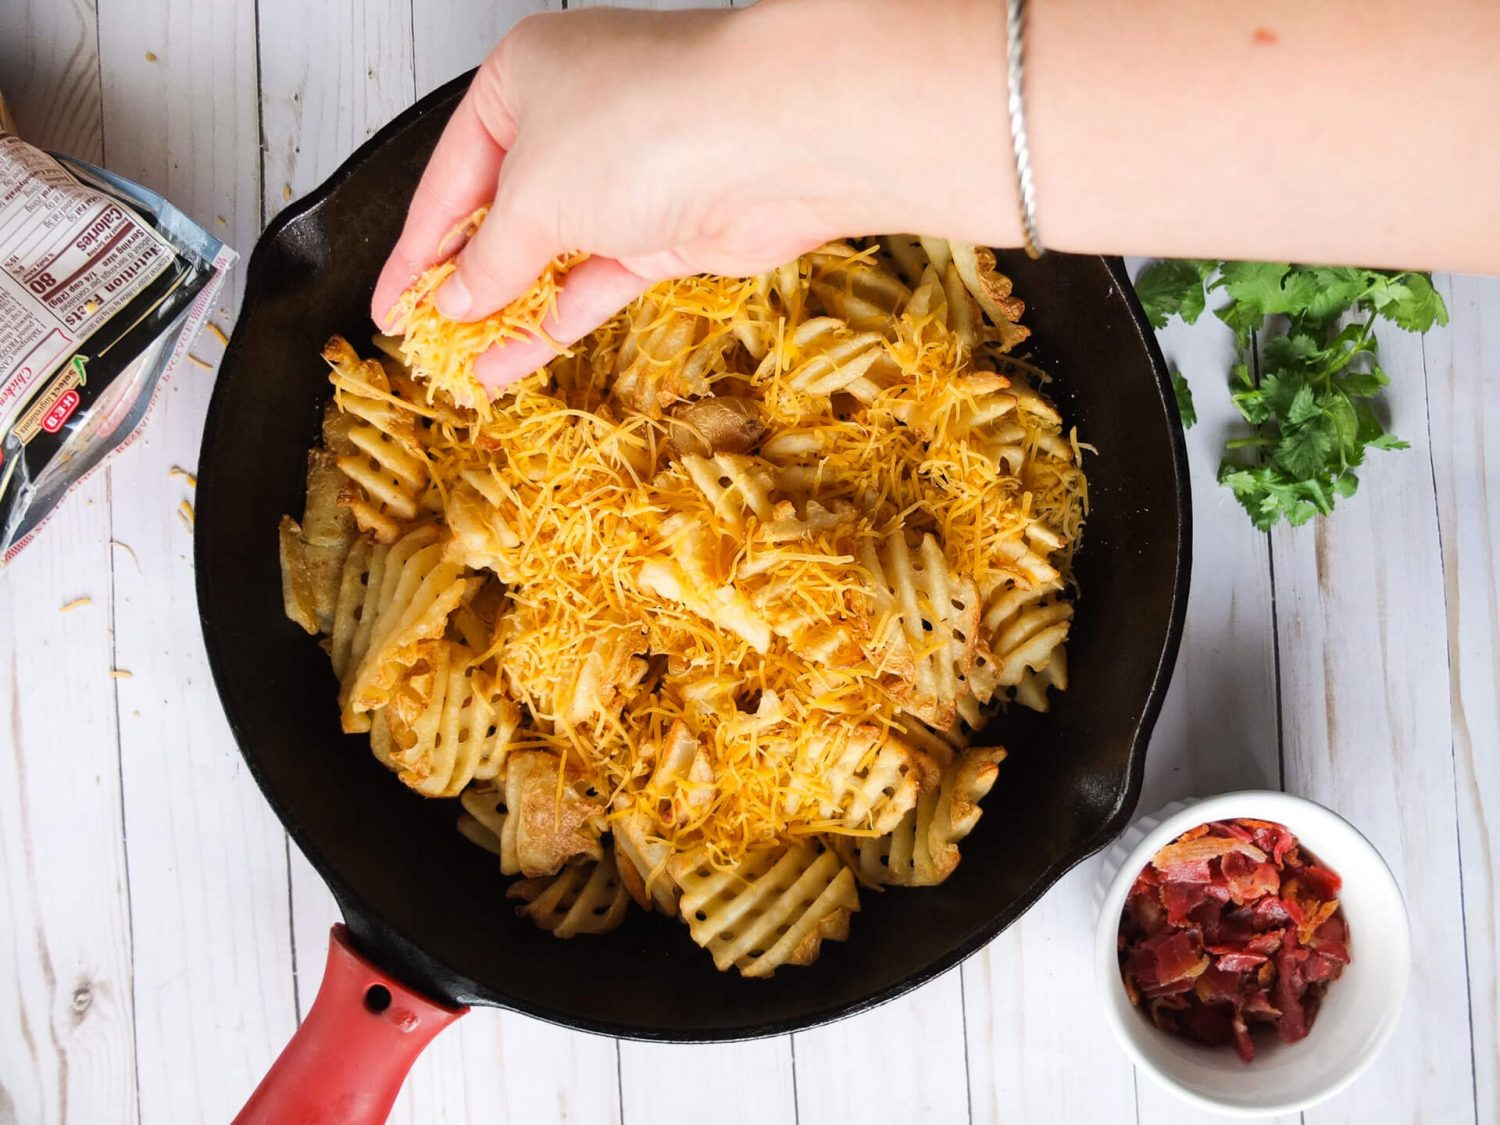 Bacon and Cheddar Loaded Fries served with a easy to make Garlick Aioli. The perfect pub food for a St. Patrick's Day appetizer.